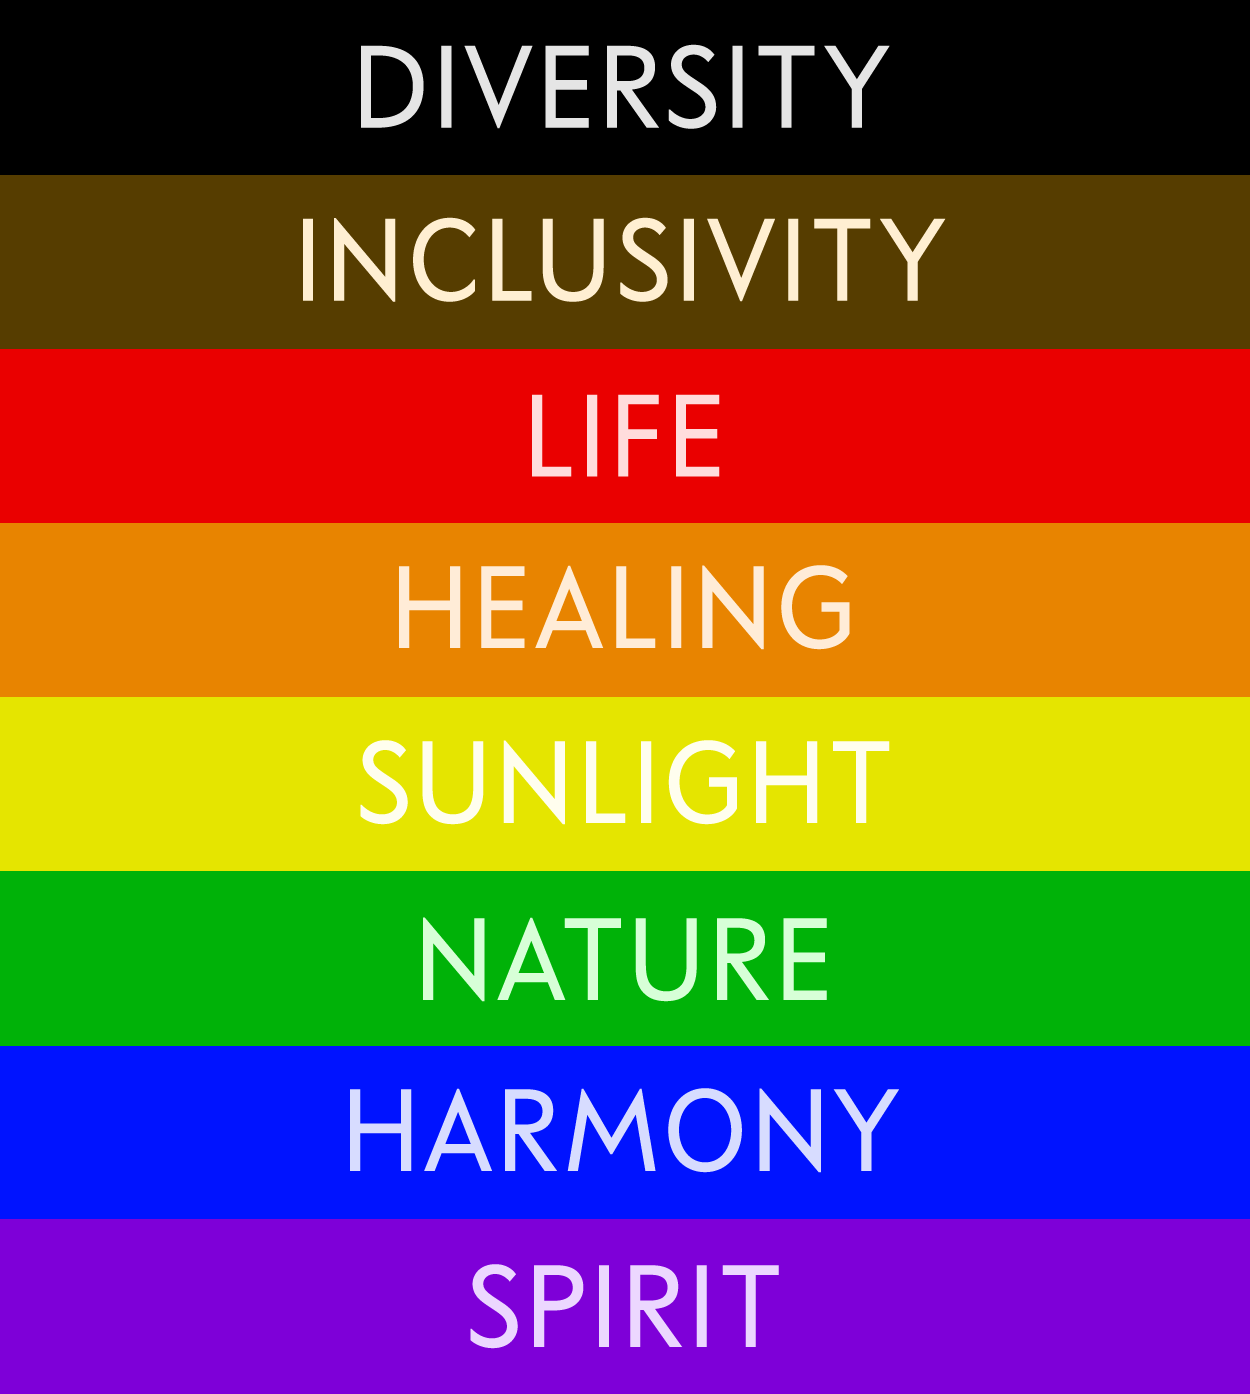 What does the gay pride rainbow mean